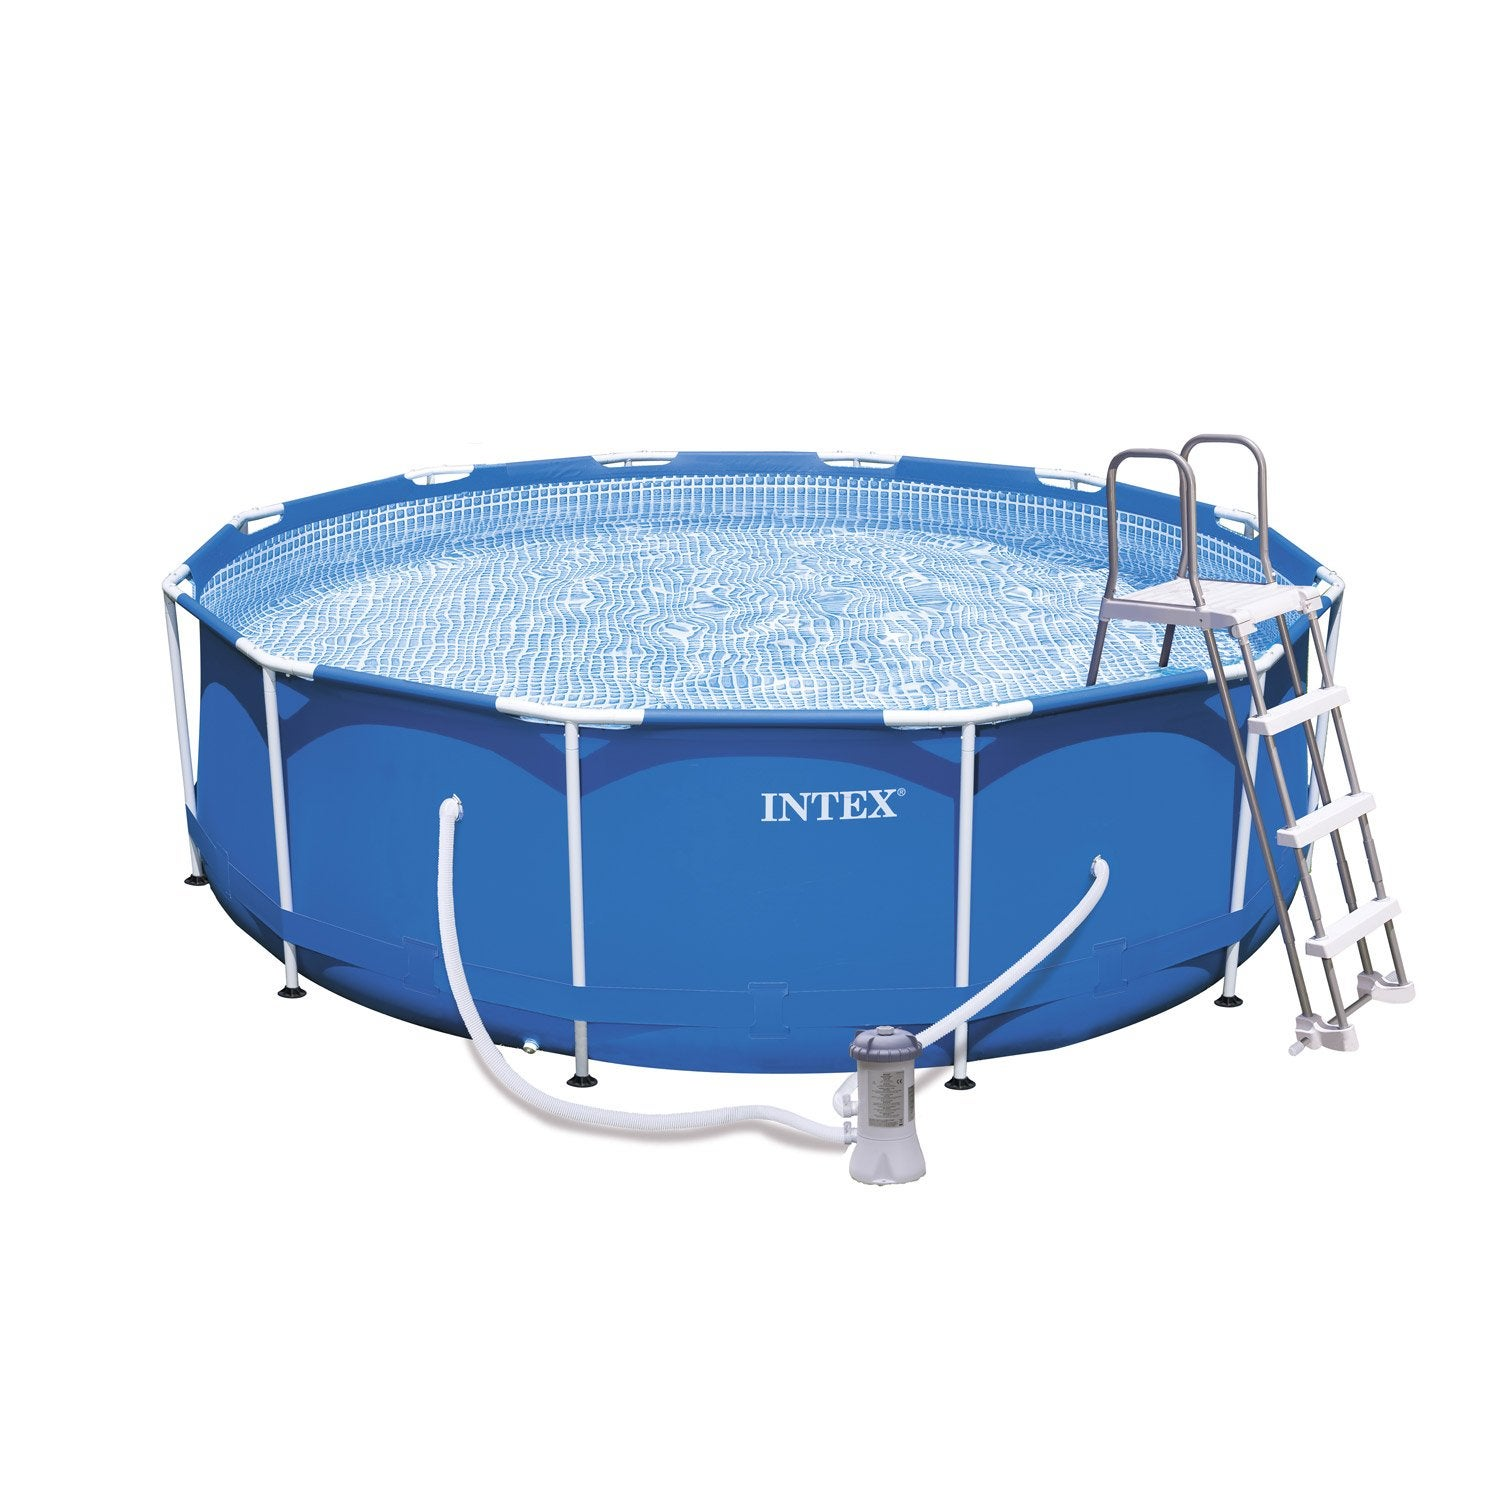 Piscine hors sol autoportante tubulaire m tal frame intex for Piscine hors sol tubulaire amazon